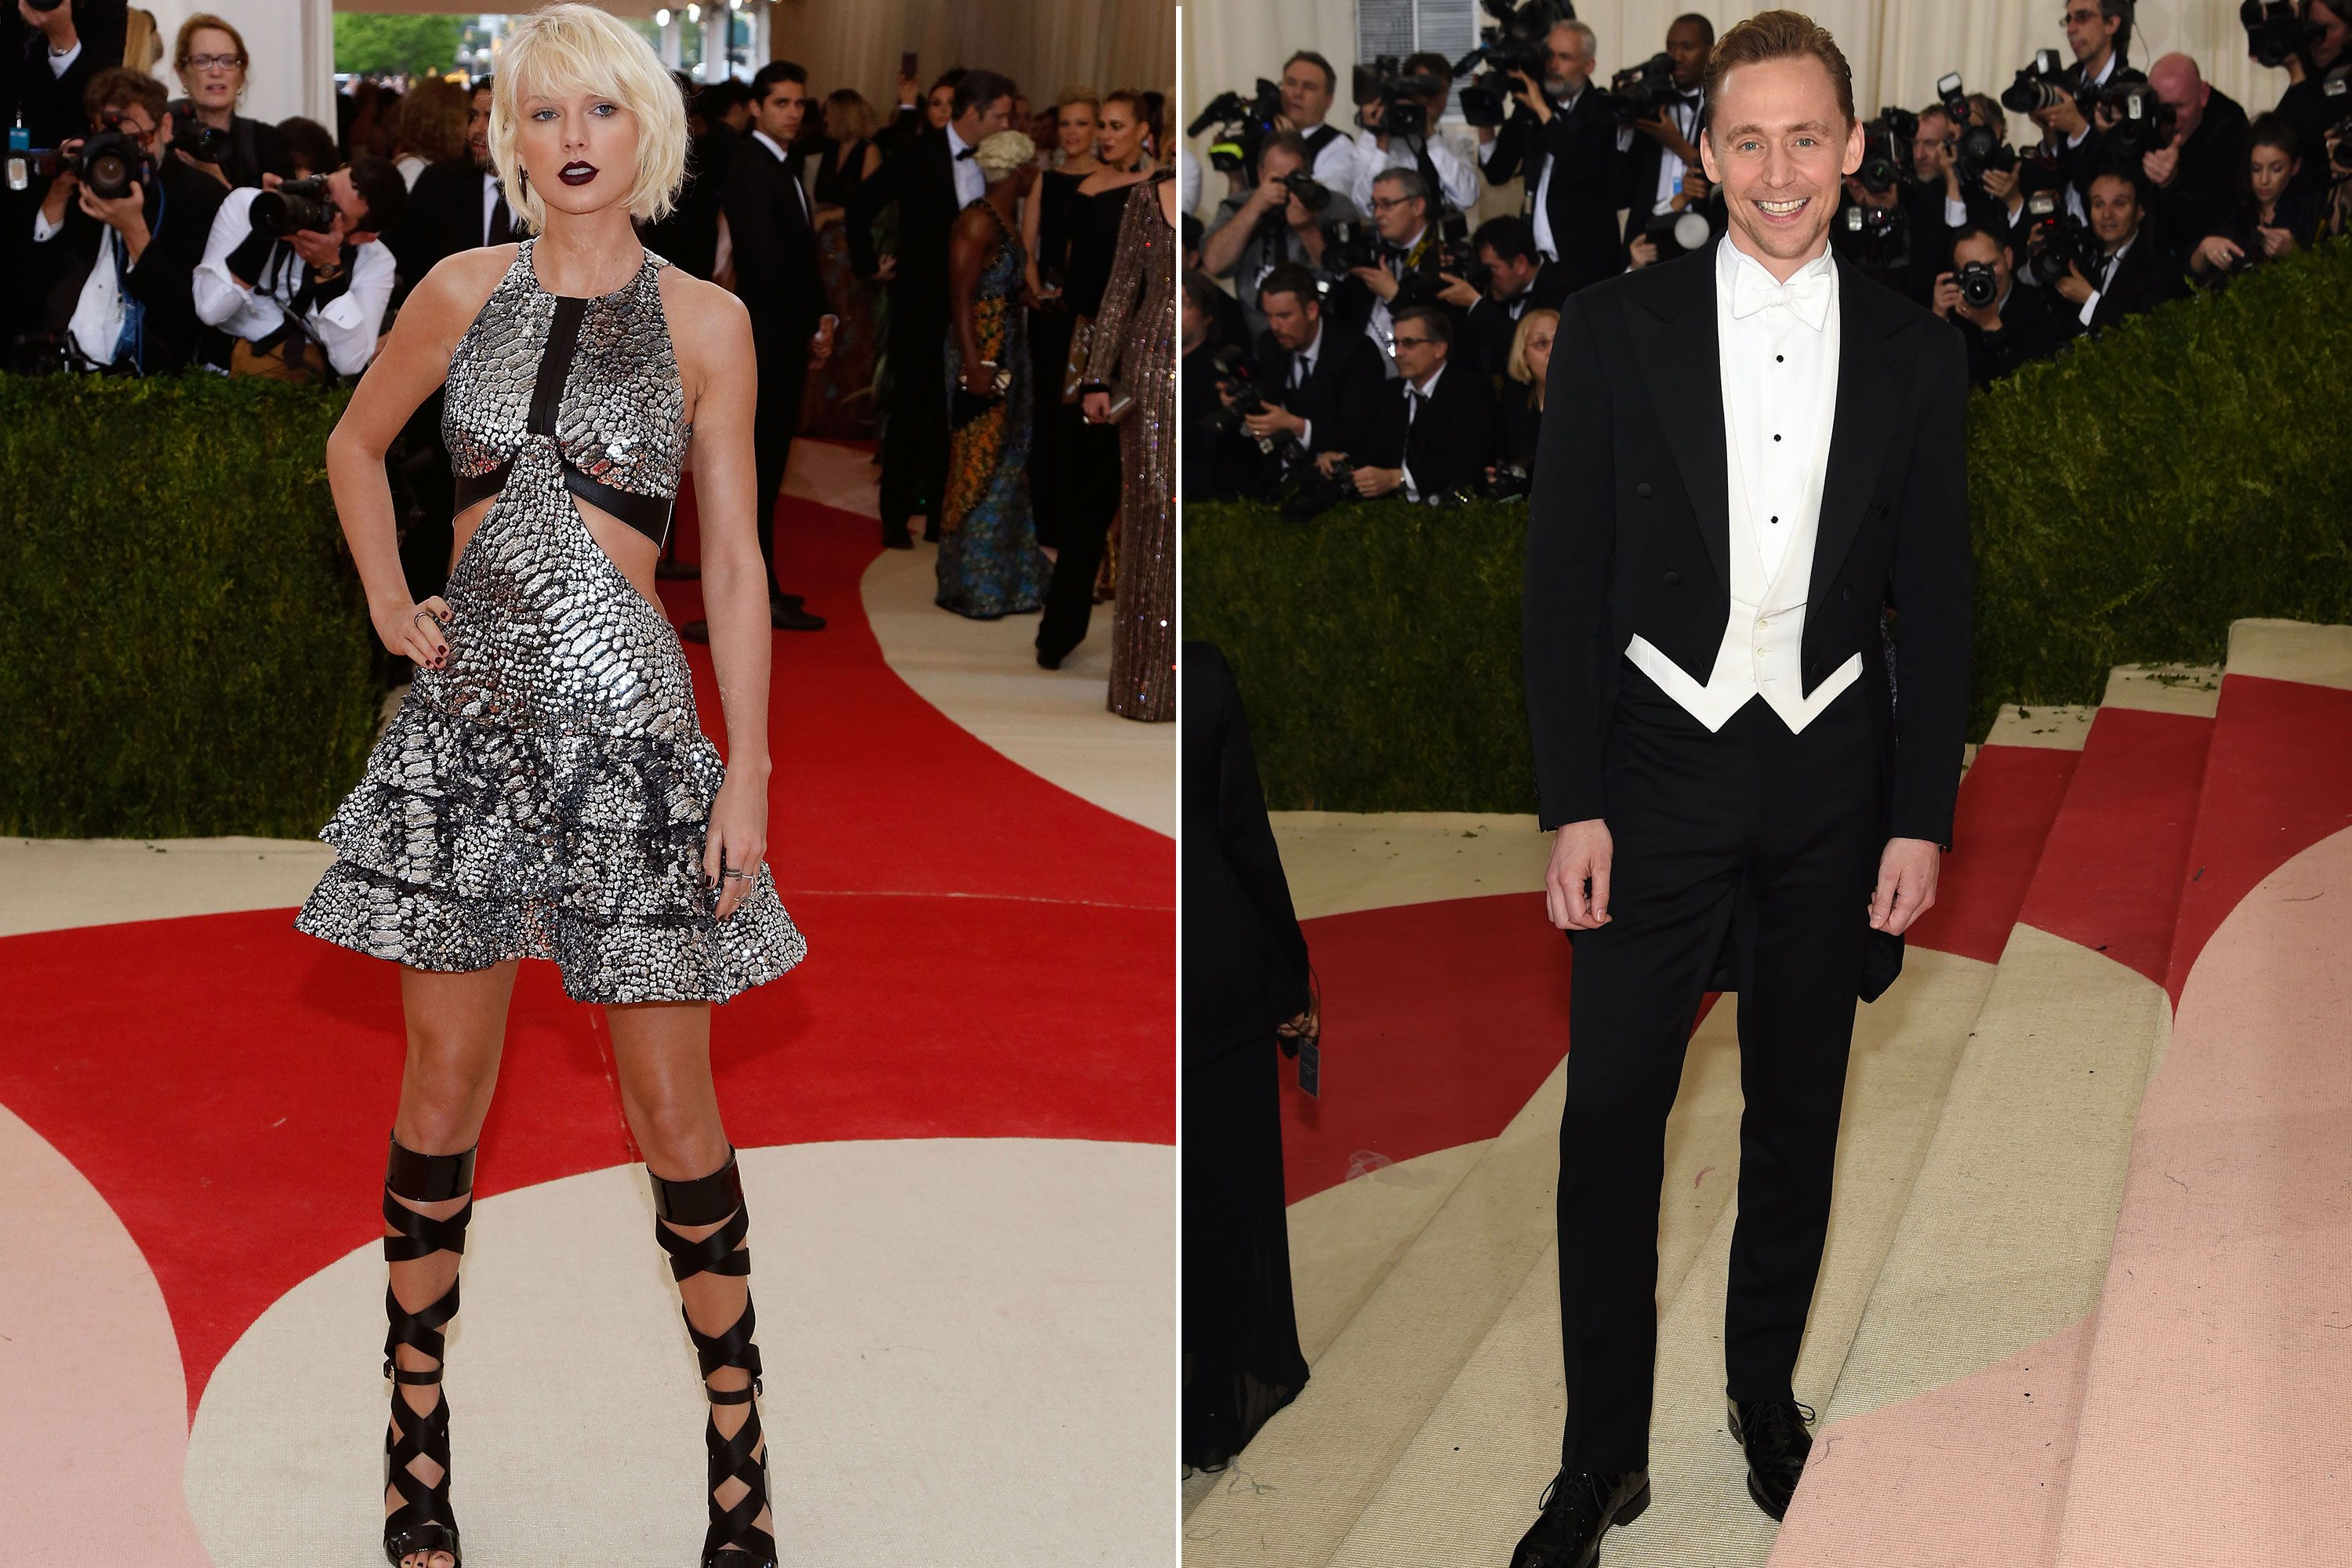 Taylor Swift And Tom Hiddleston Had A Dance Off At The Met Gala